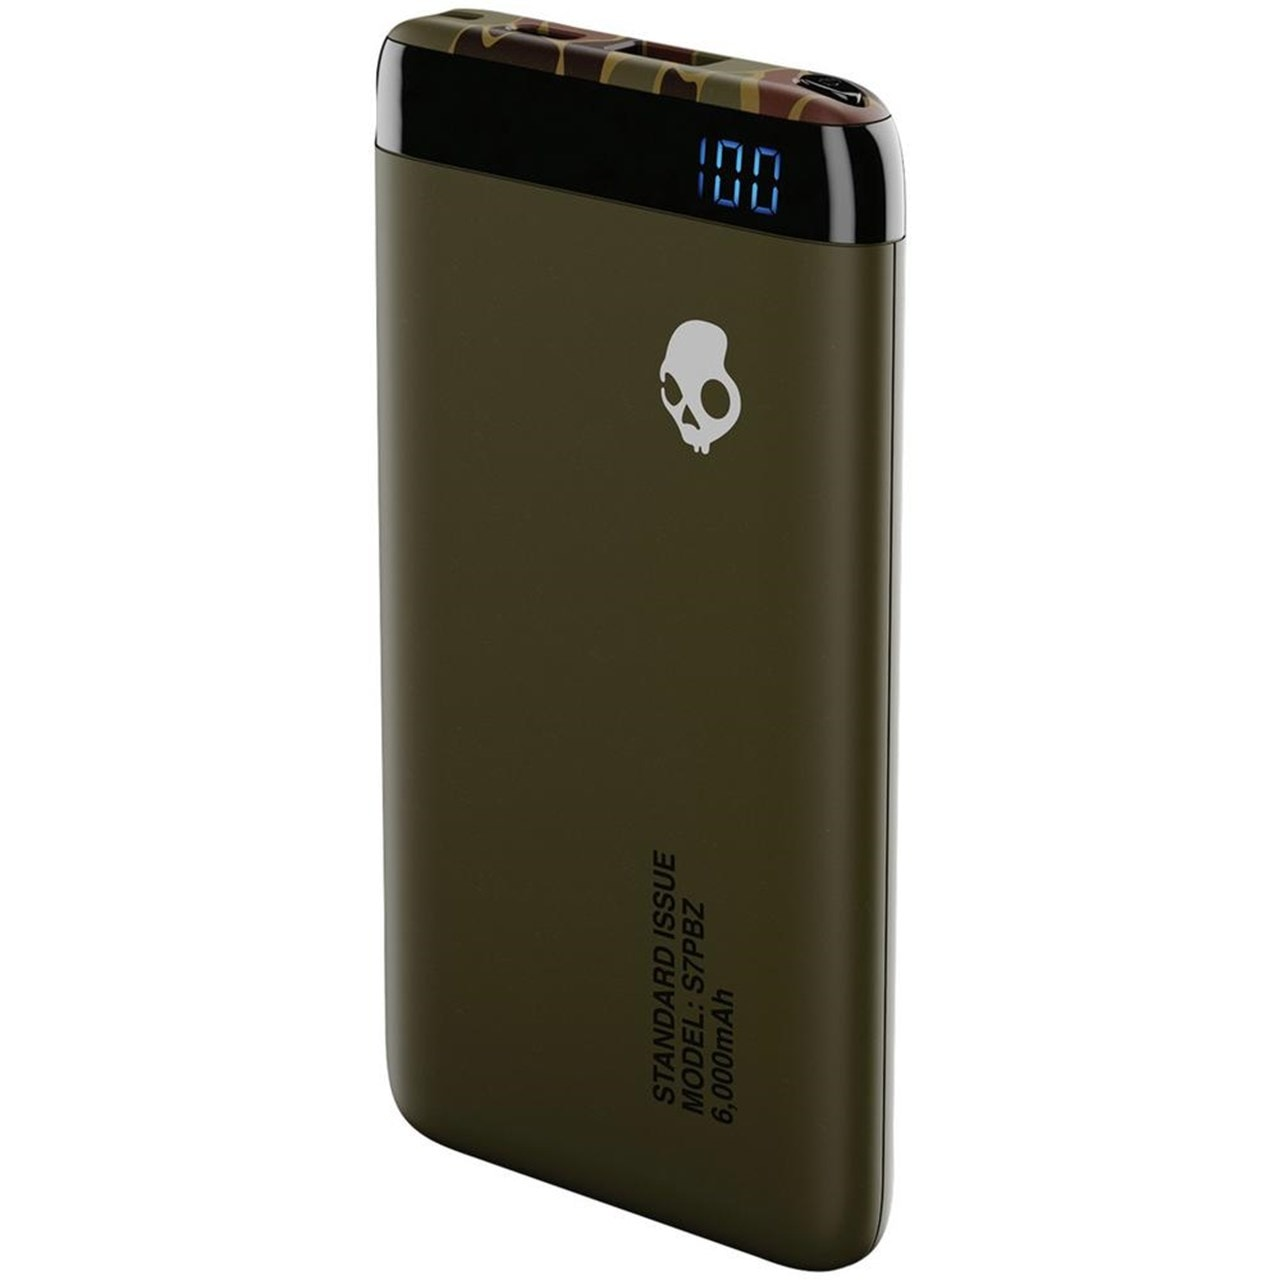 Skullcandy Stash Standard Issue (Camo) 6000mAh Power Bank - 1